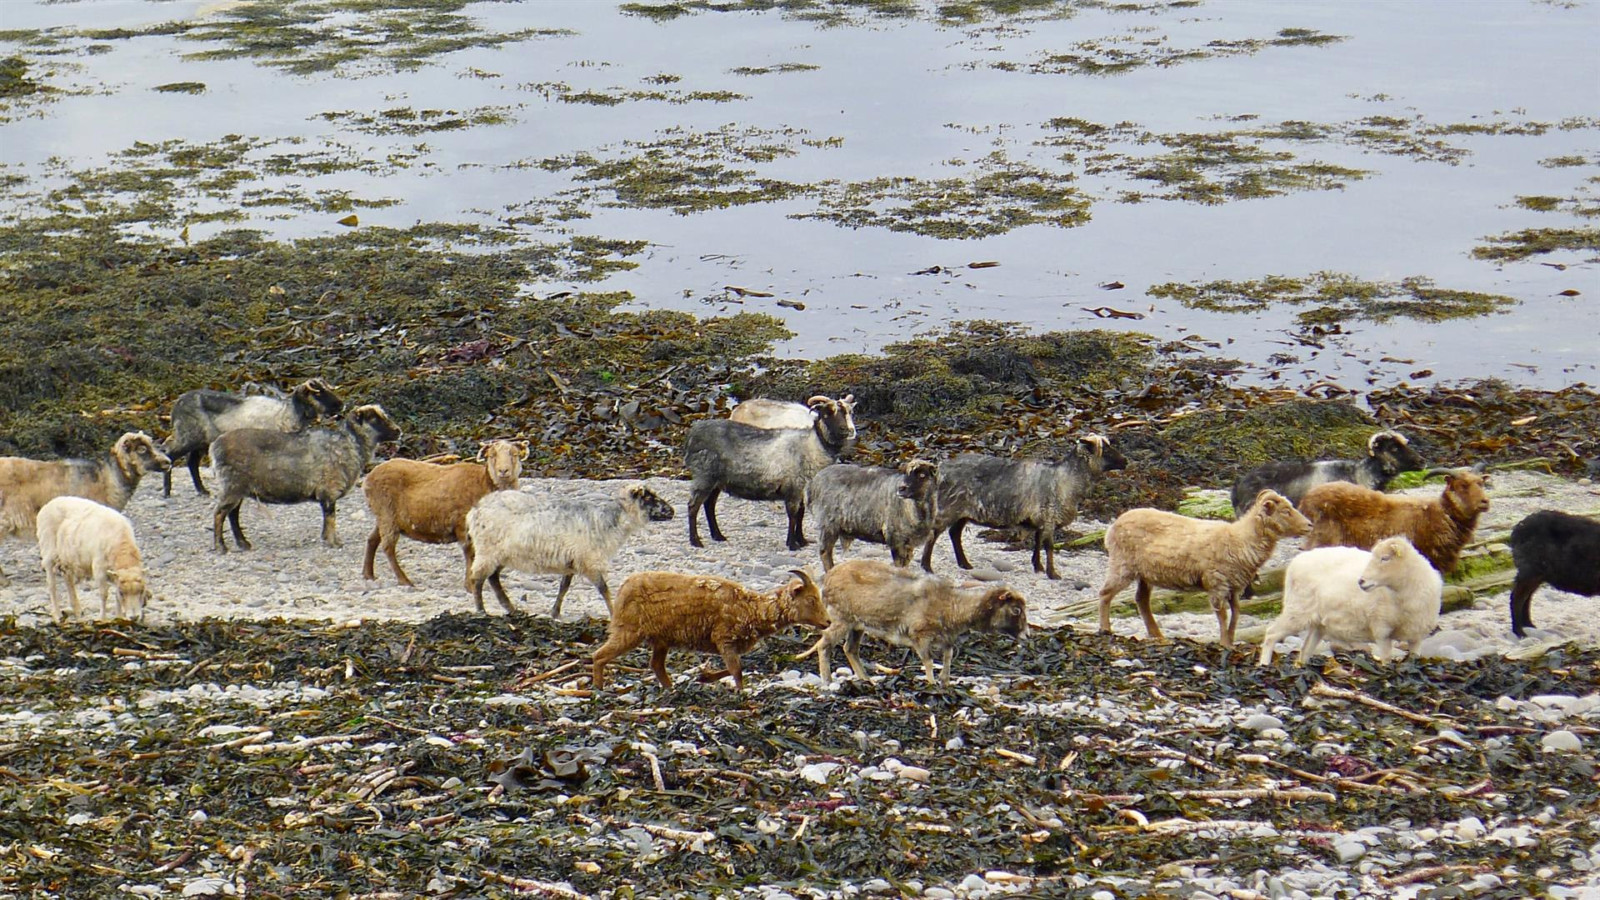 The North Ronaldsay Sheep is the first Slow Food Presidium in Scotland